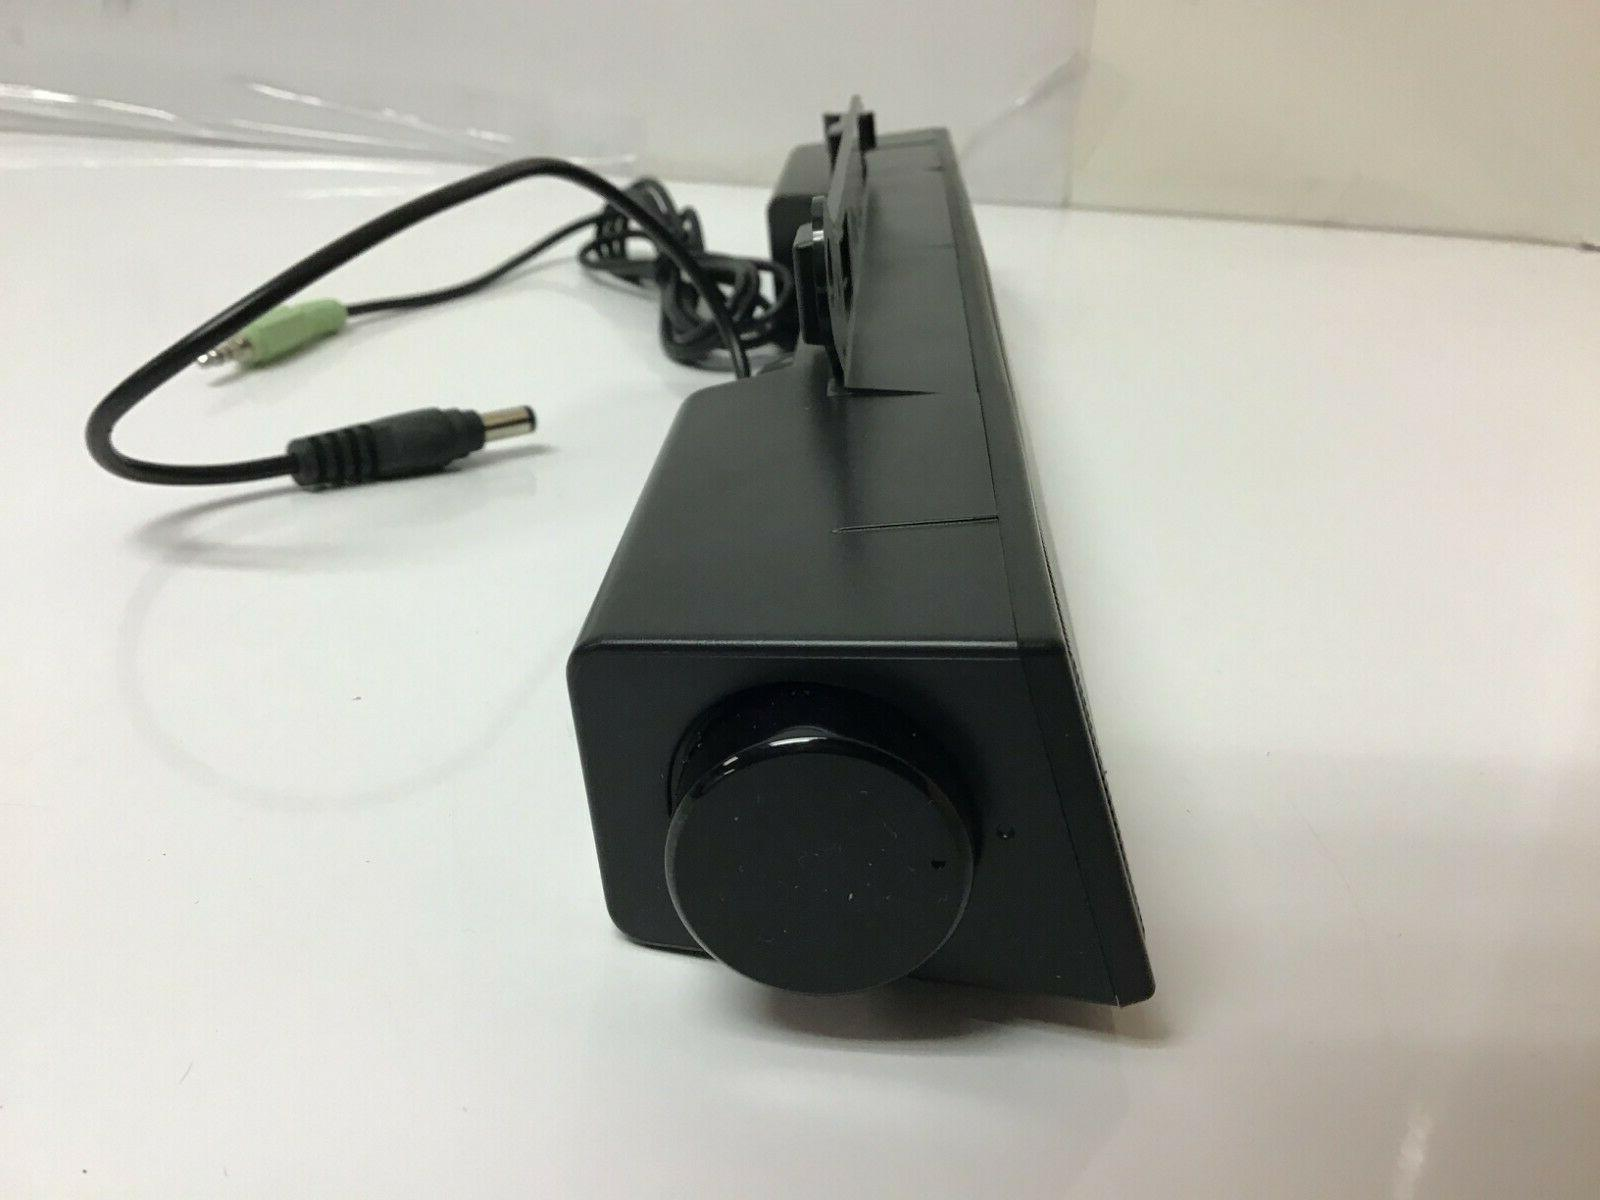 NEW AX510 Stereo Speakers 0DW711 Power Adapter